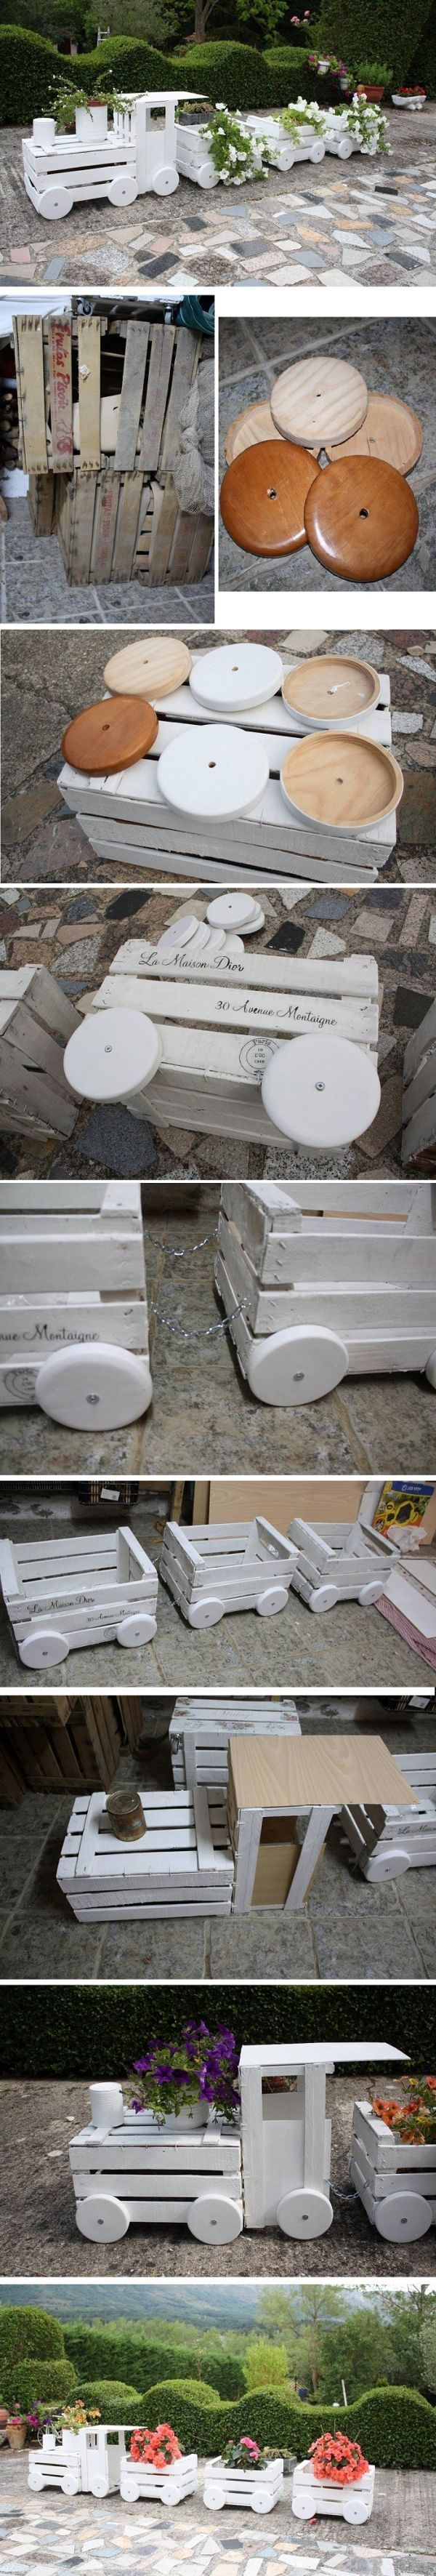 Build a Train Made Out Of Old Crates | WoodworkerZ.com